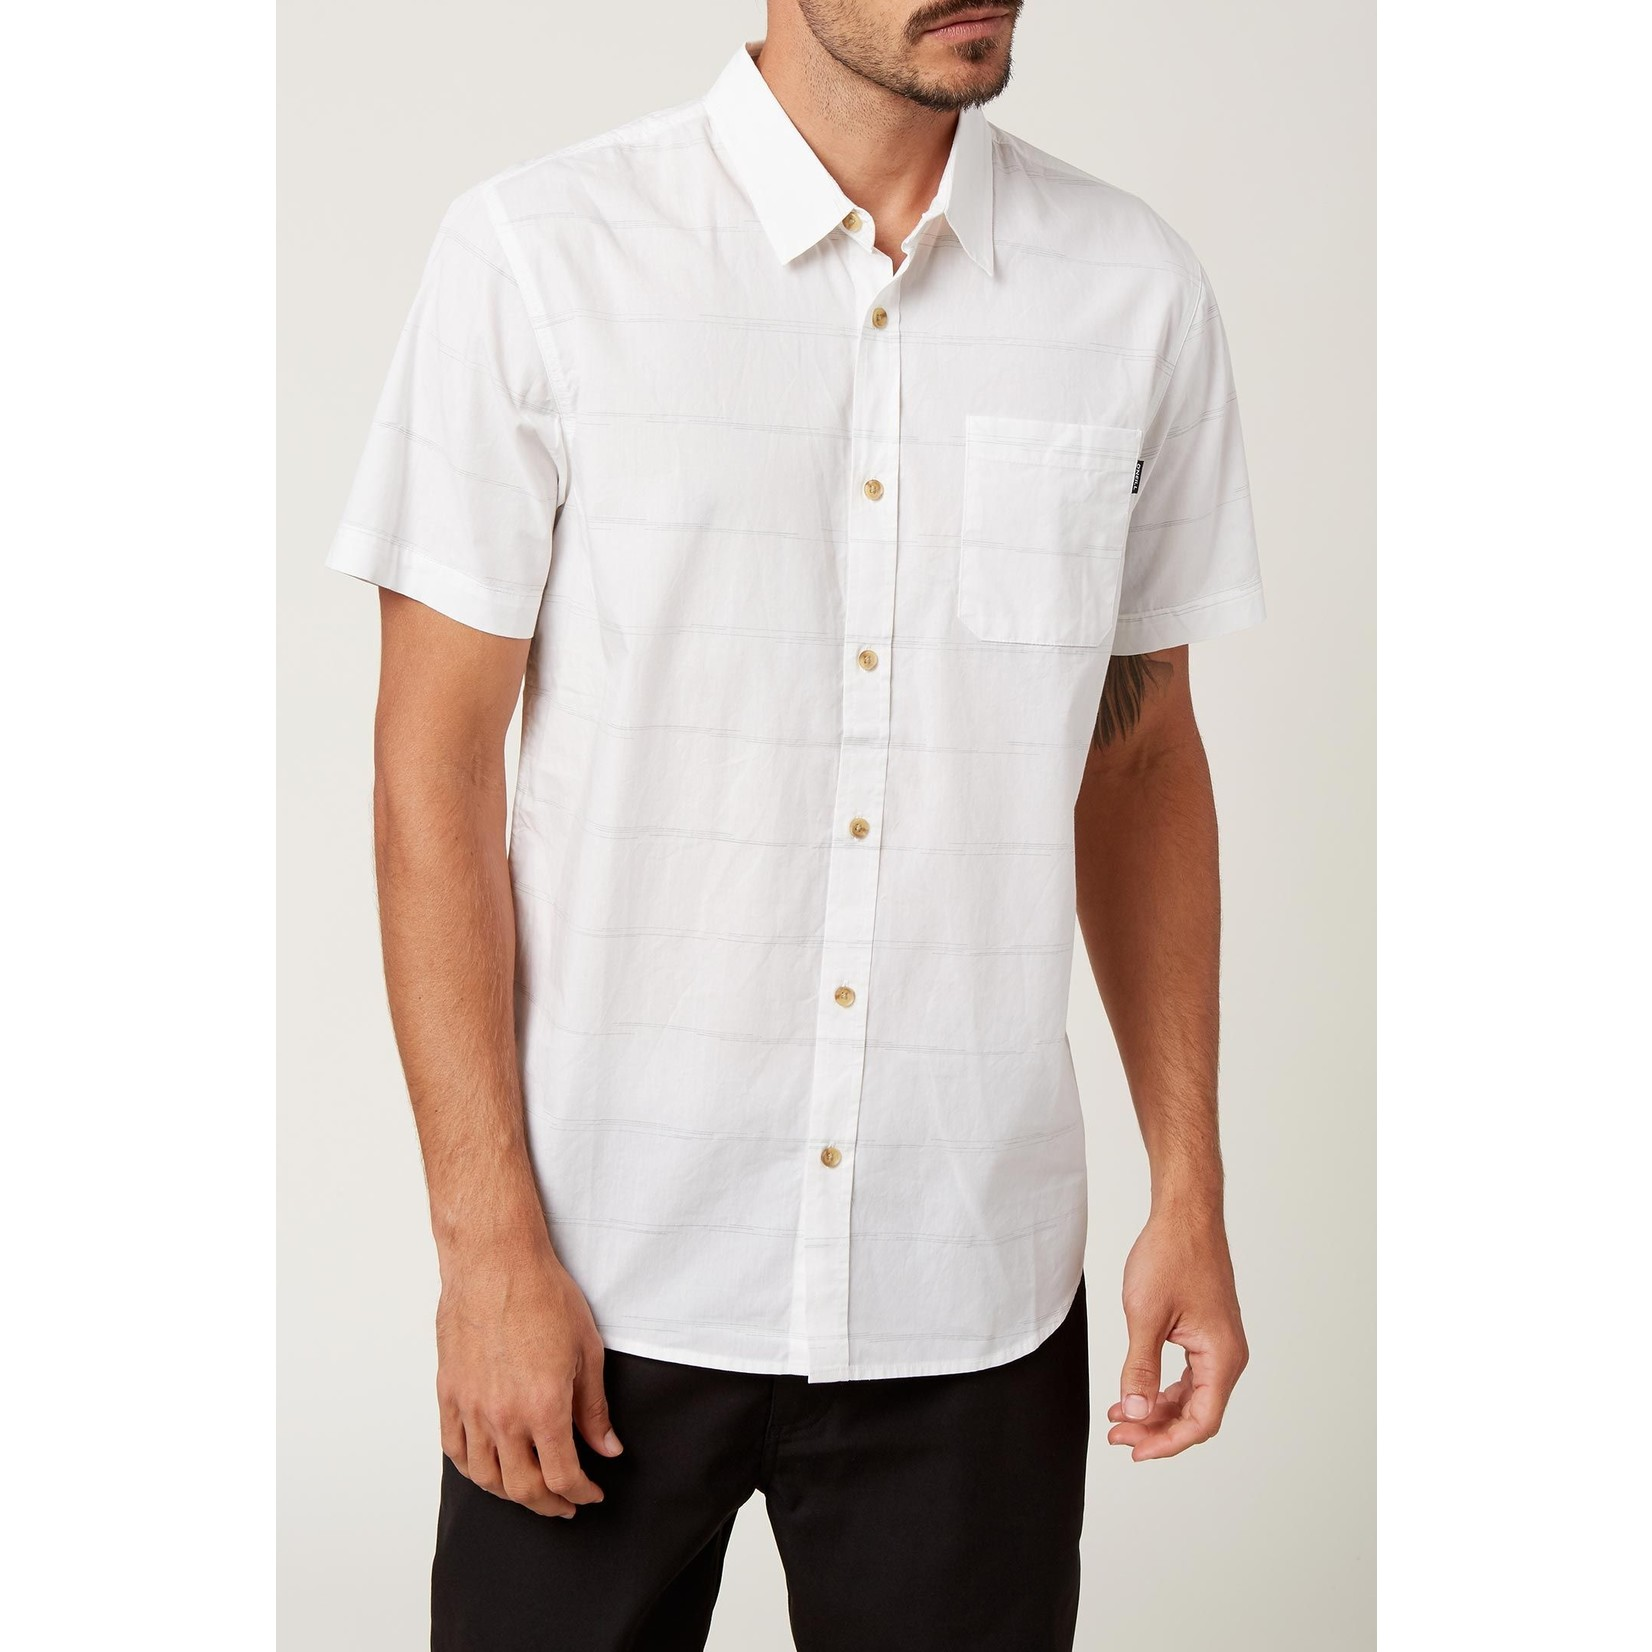 Oneill IMPERIAL STRIPE S/S BUTTON-UP